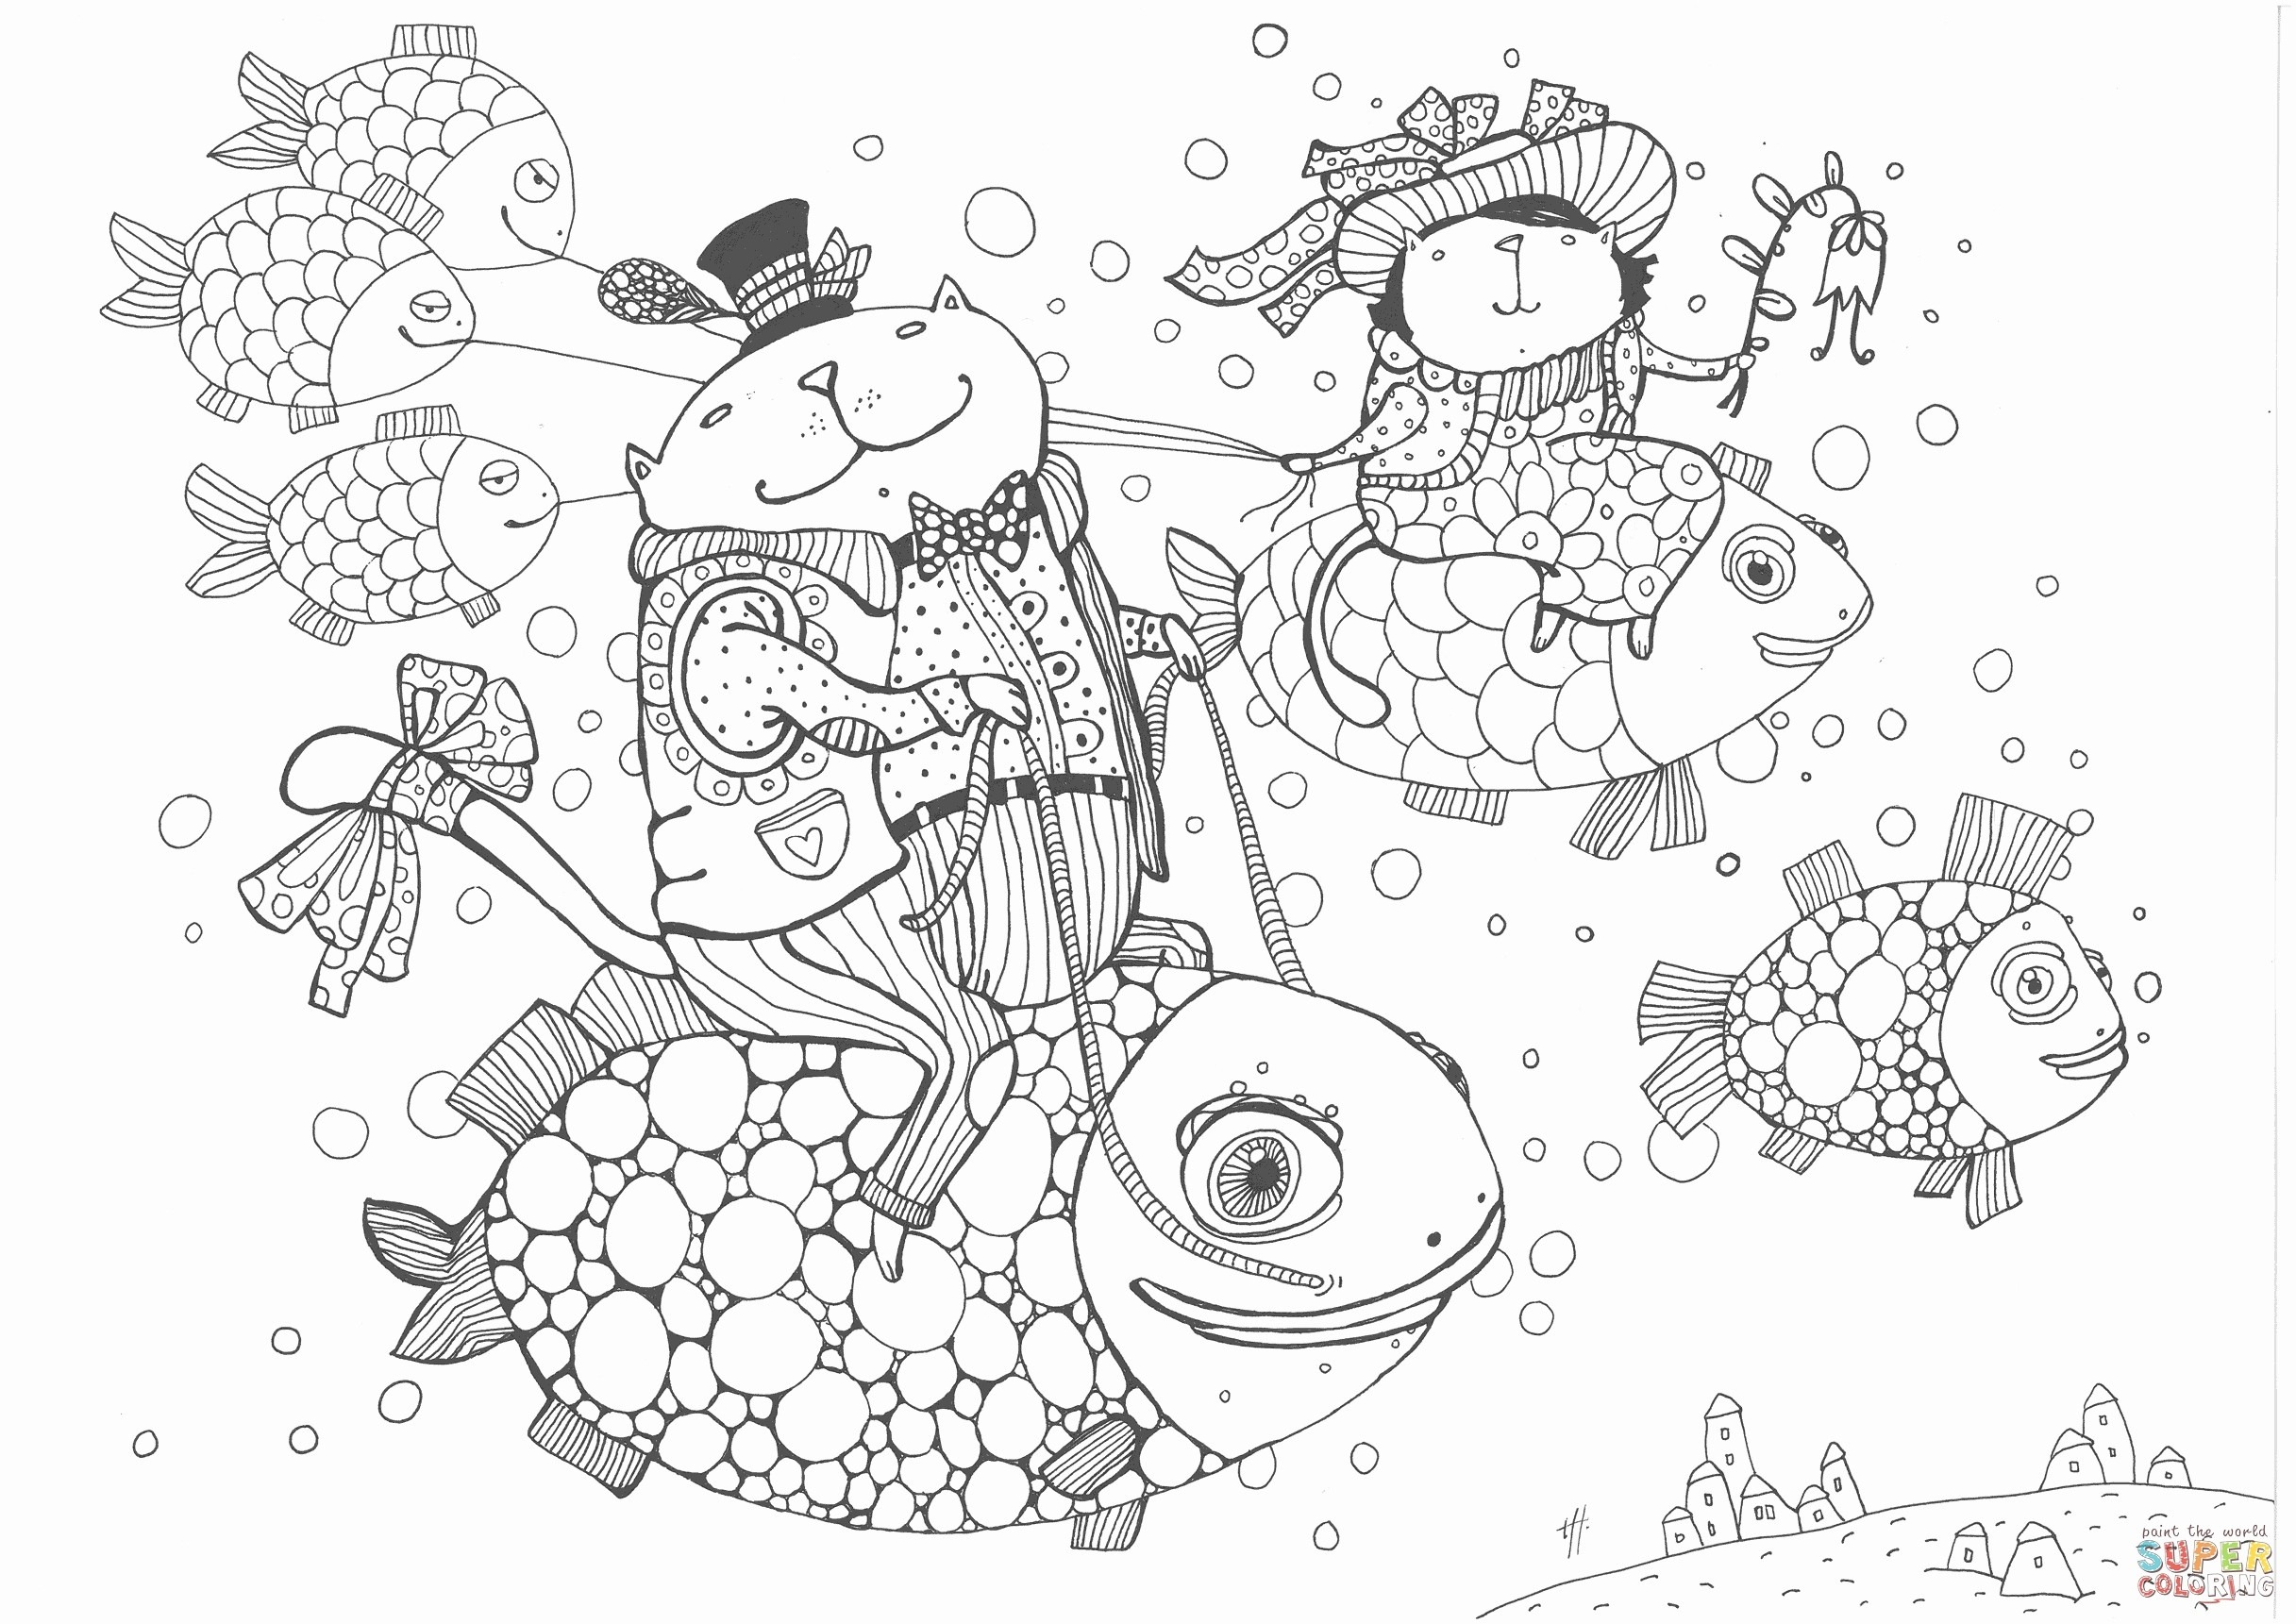 hindu gods coloring pages Collection-Hindu Gods Printable Coloring Pages Free Printable Fall Coloring Pages for Preschoolers New Free 8-f